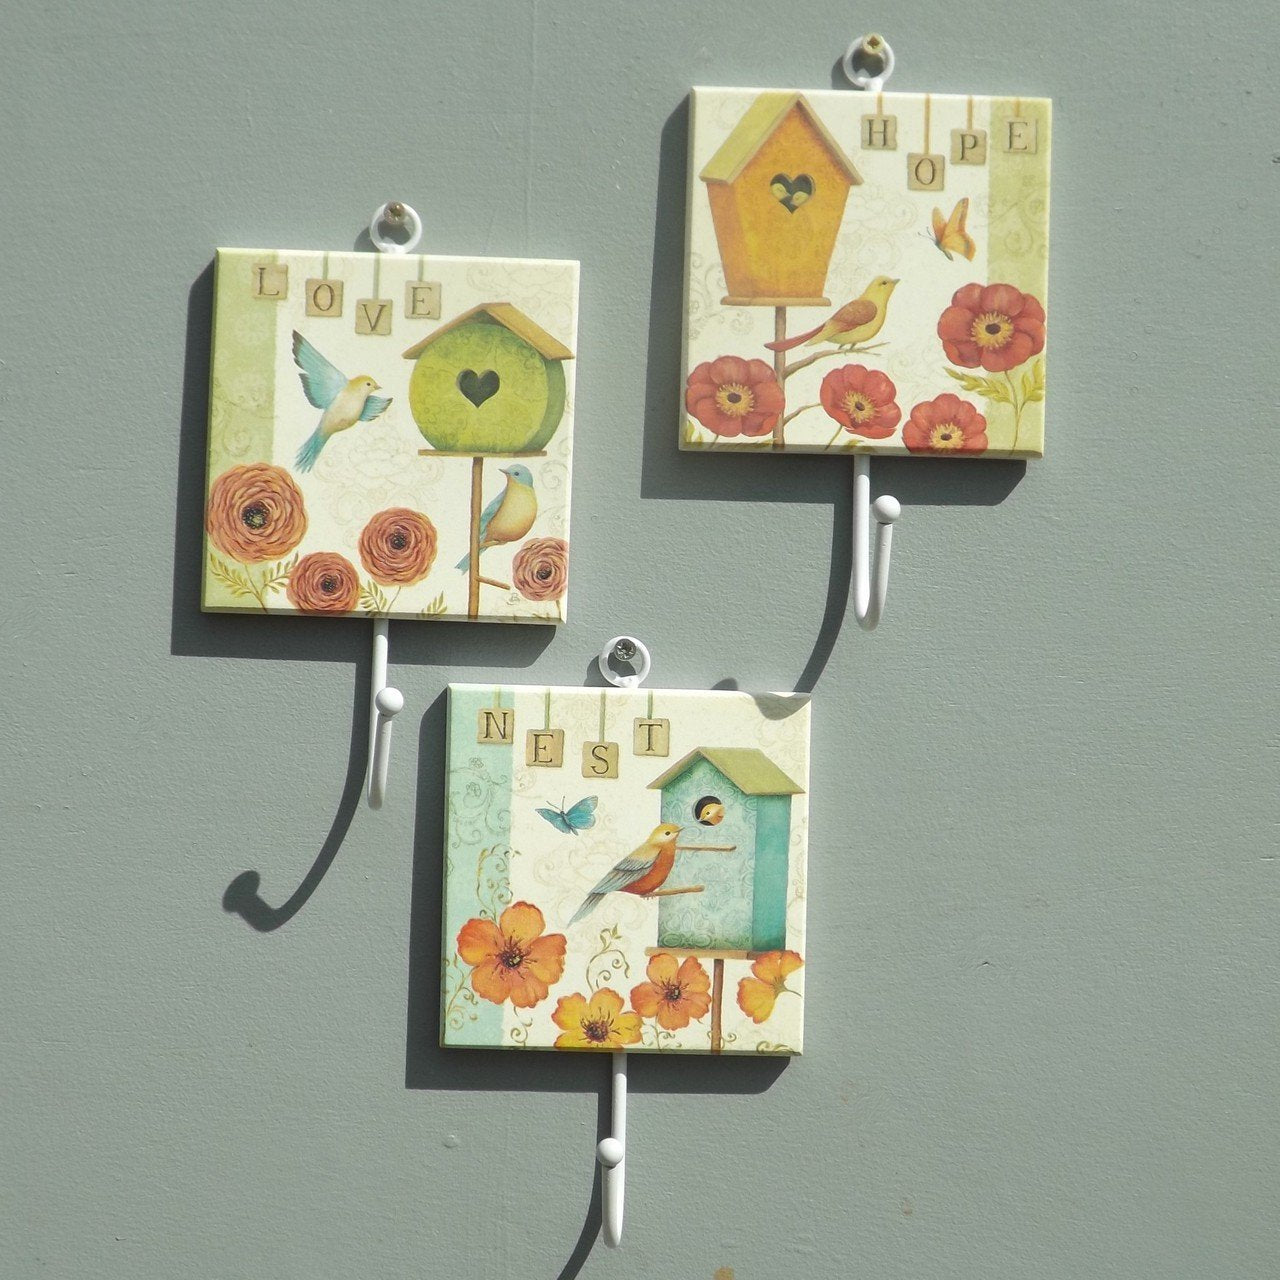 Set of Coat Hooks - Love, Nest, Hope